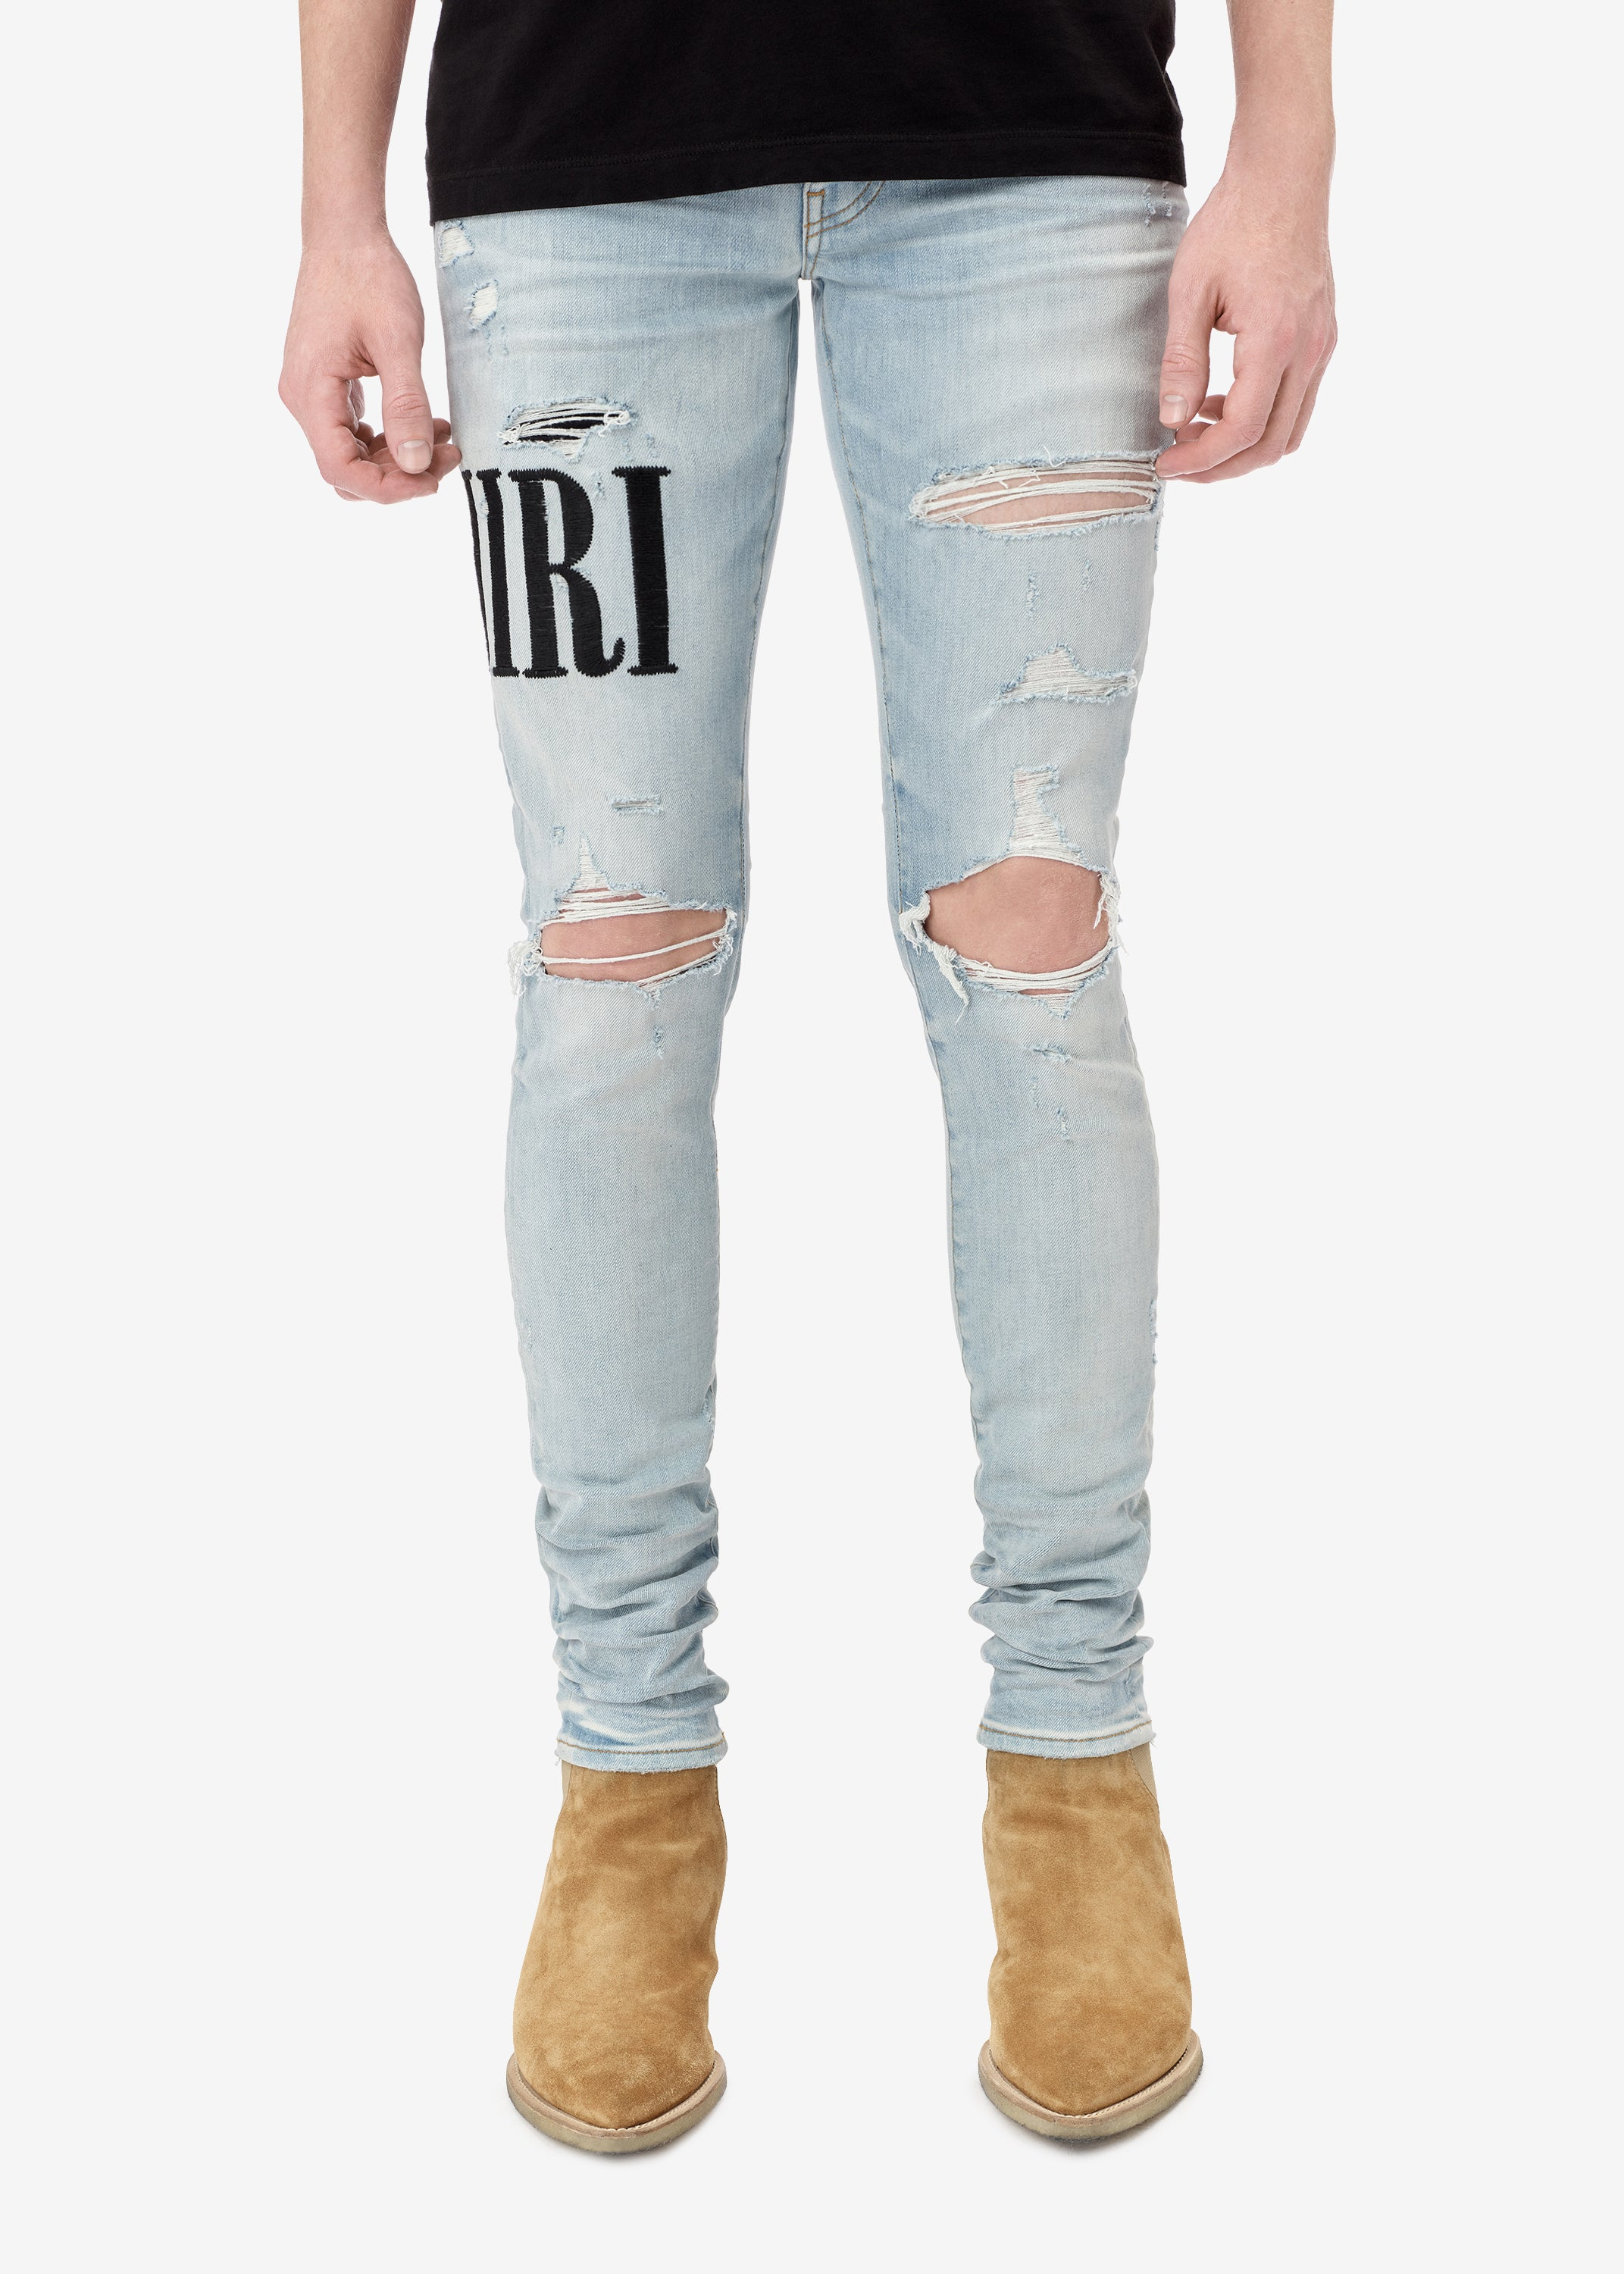 embroidered-amiri-jean-super-light-indigo-image-1